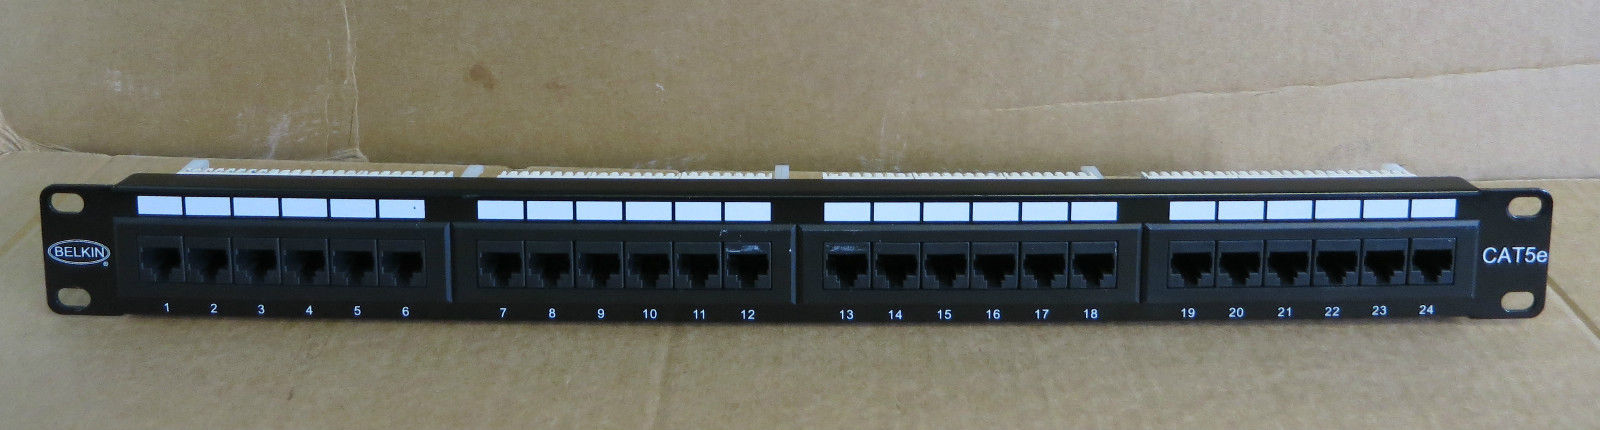 Groovy Belkin 24 Port Cat5E Rj45 Ethernet Network Patch Panel T568Ab Wiring Cloud Oideiuggs Outletorg